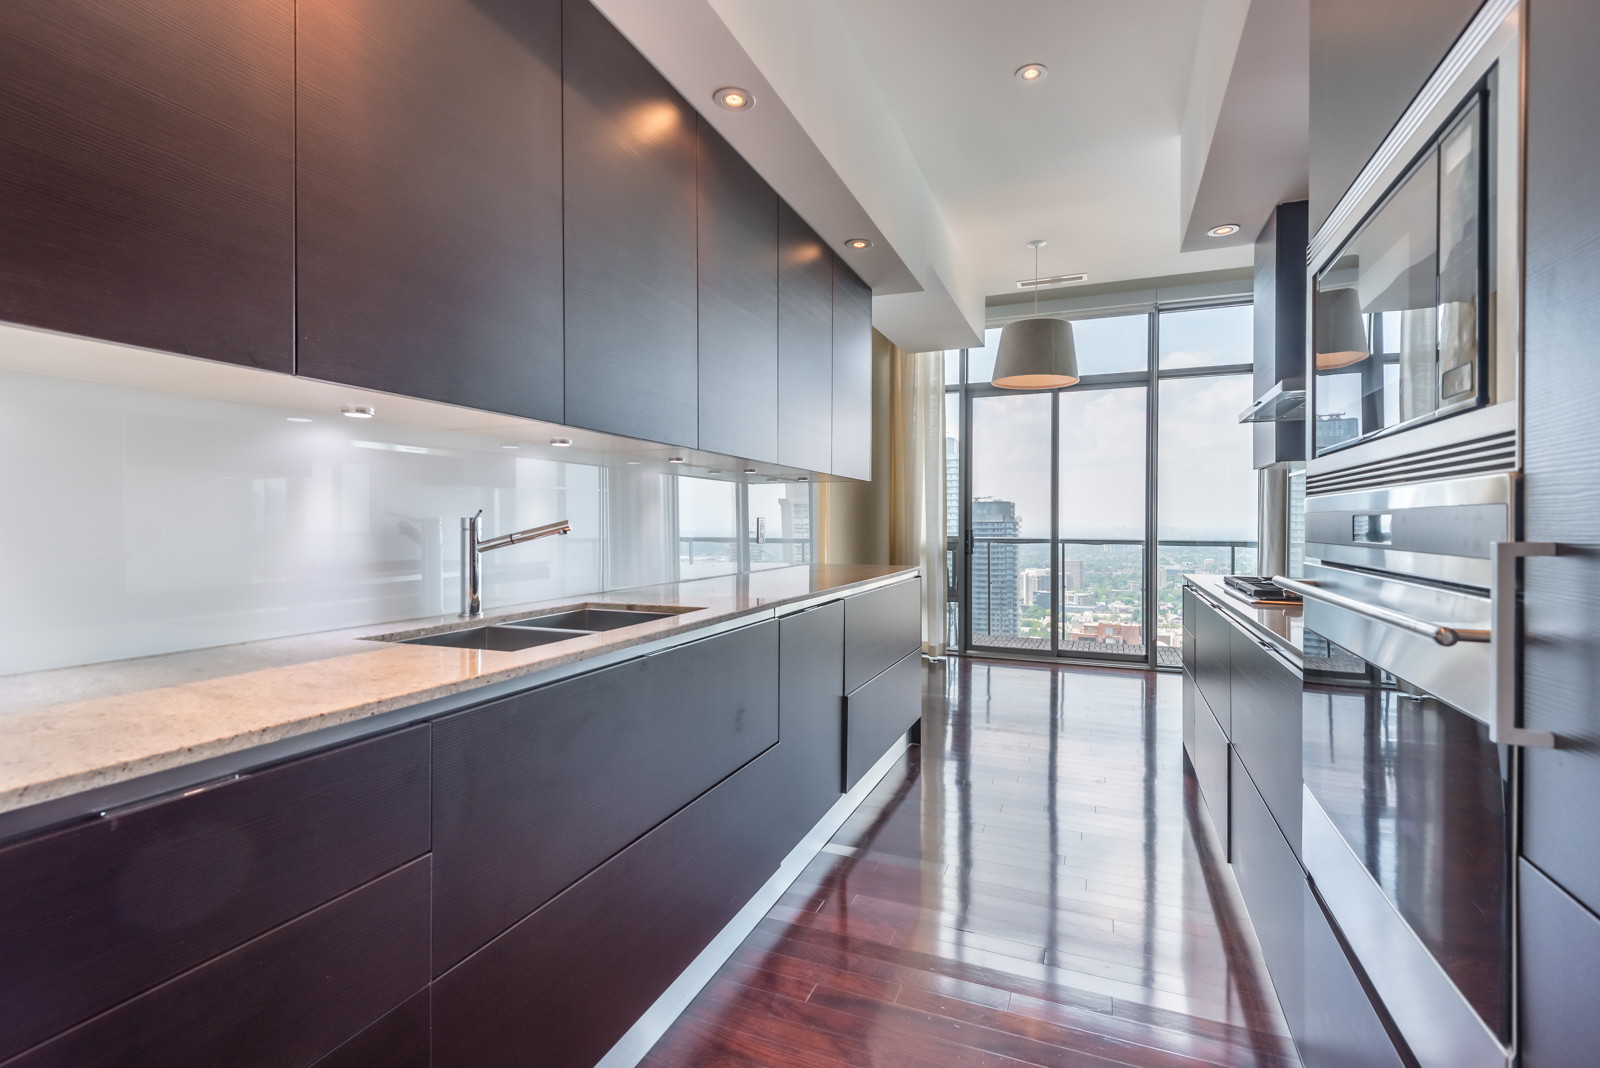 Galley kitchen with dark cabinets on either side of penthouse suite at 33 Charles St E Casa Condos.